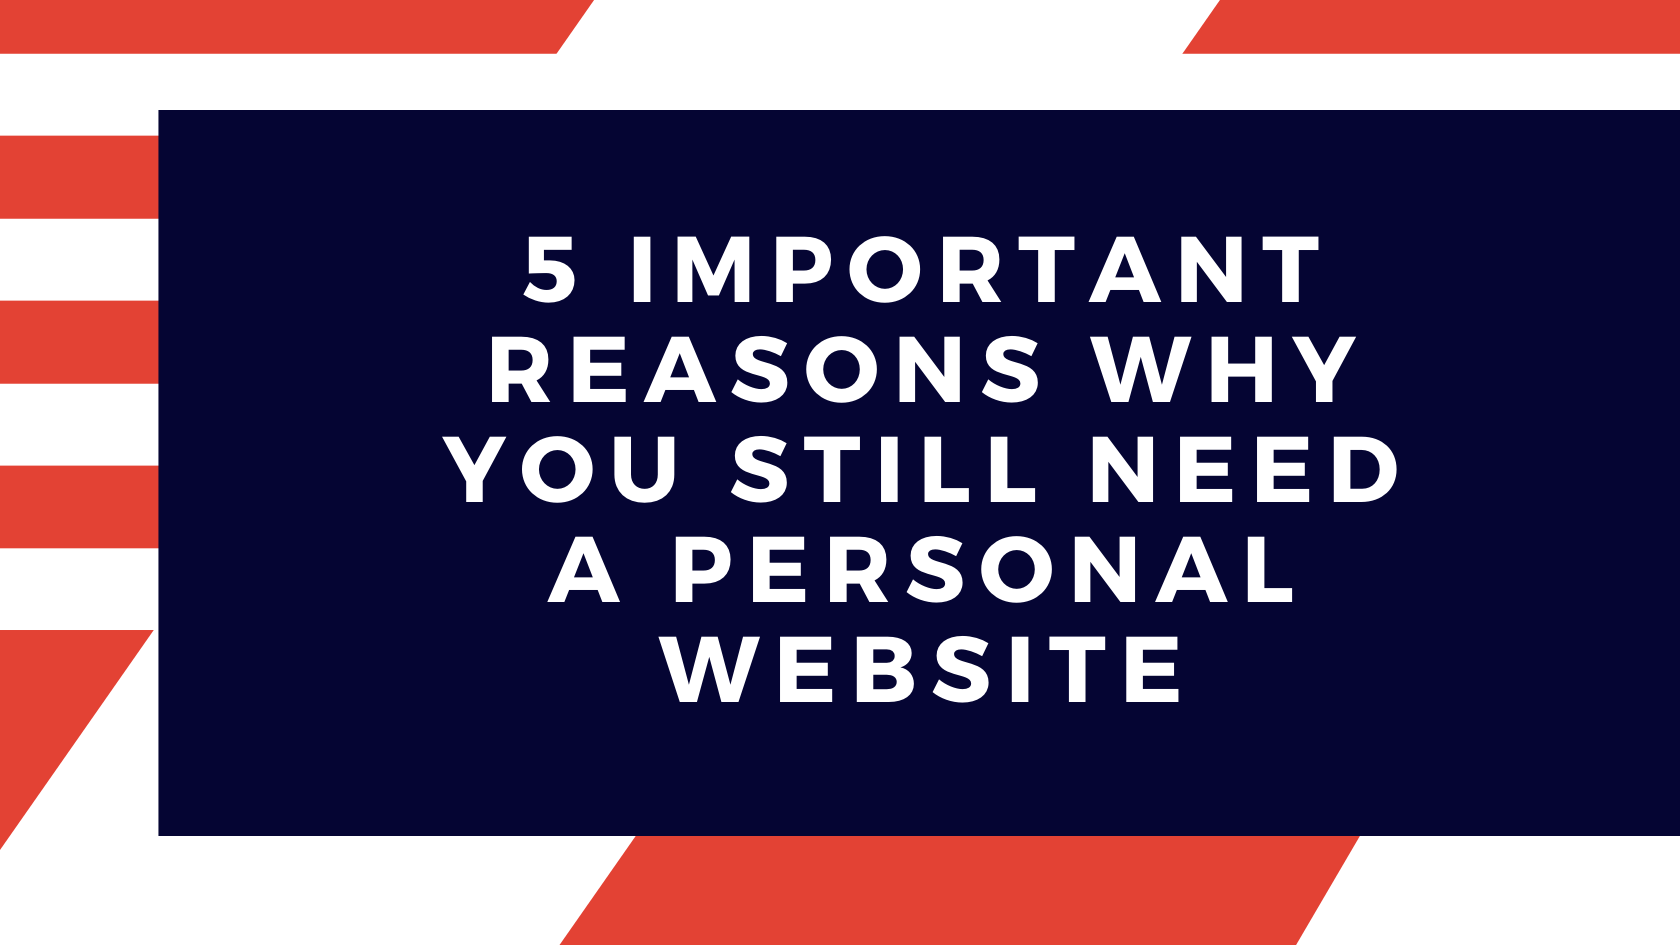 importance of personal website, benefits of having a personal website, reasons to have a personal website, personal website